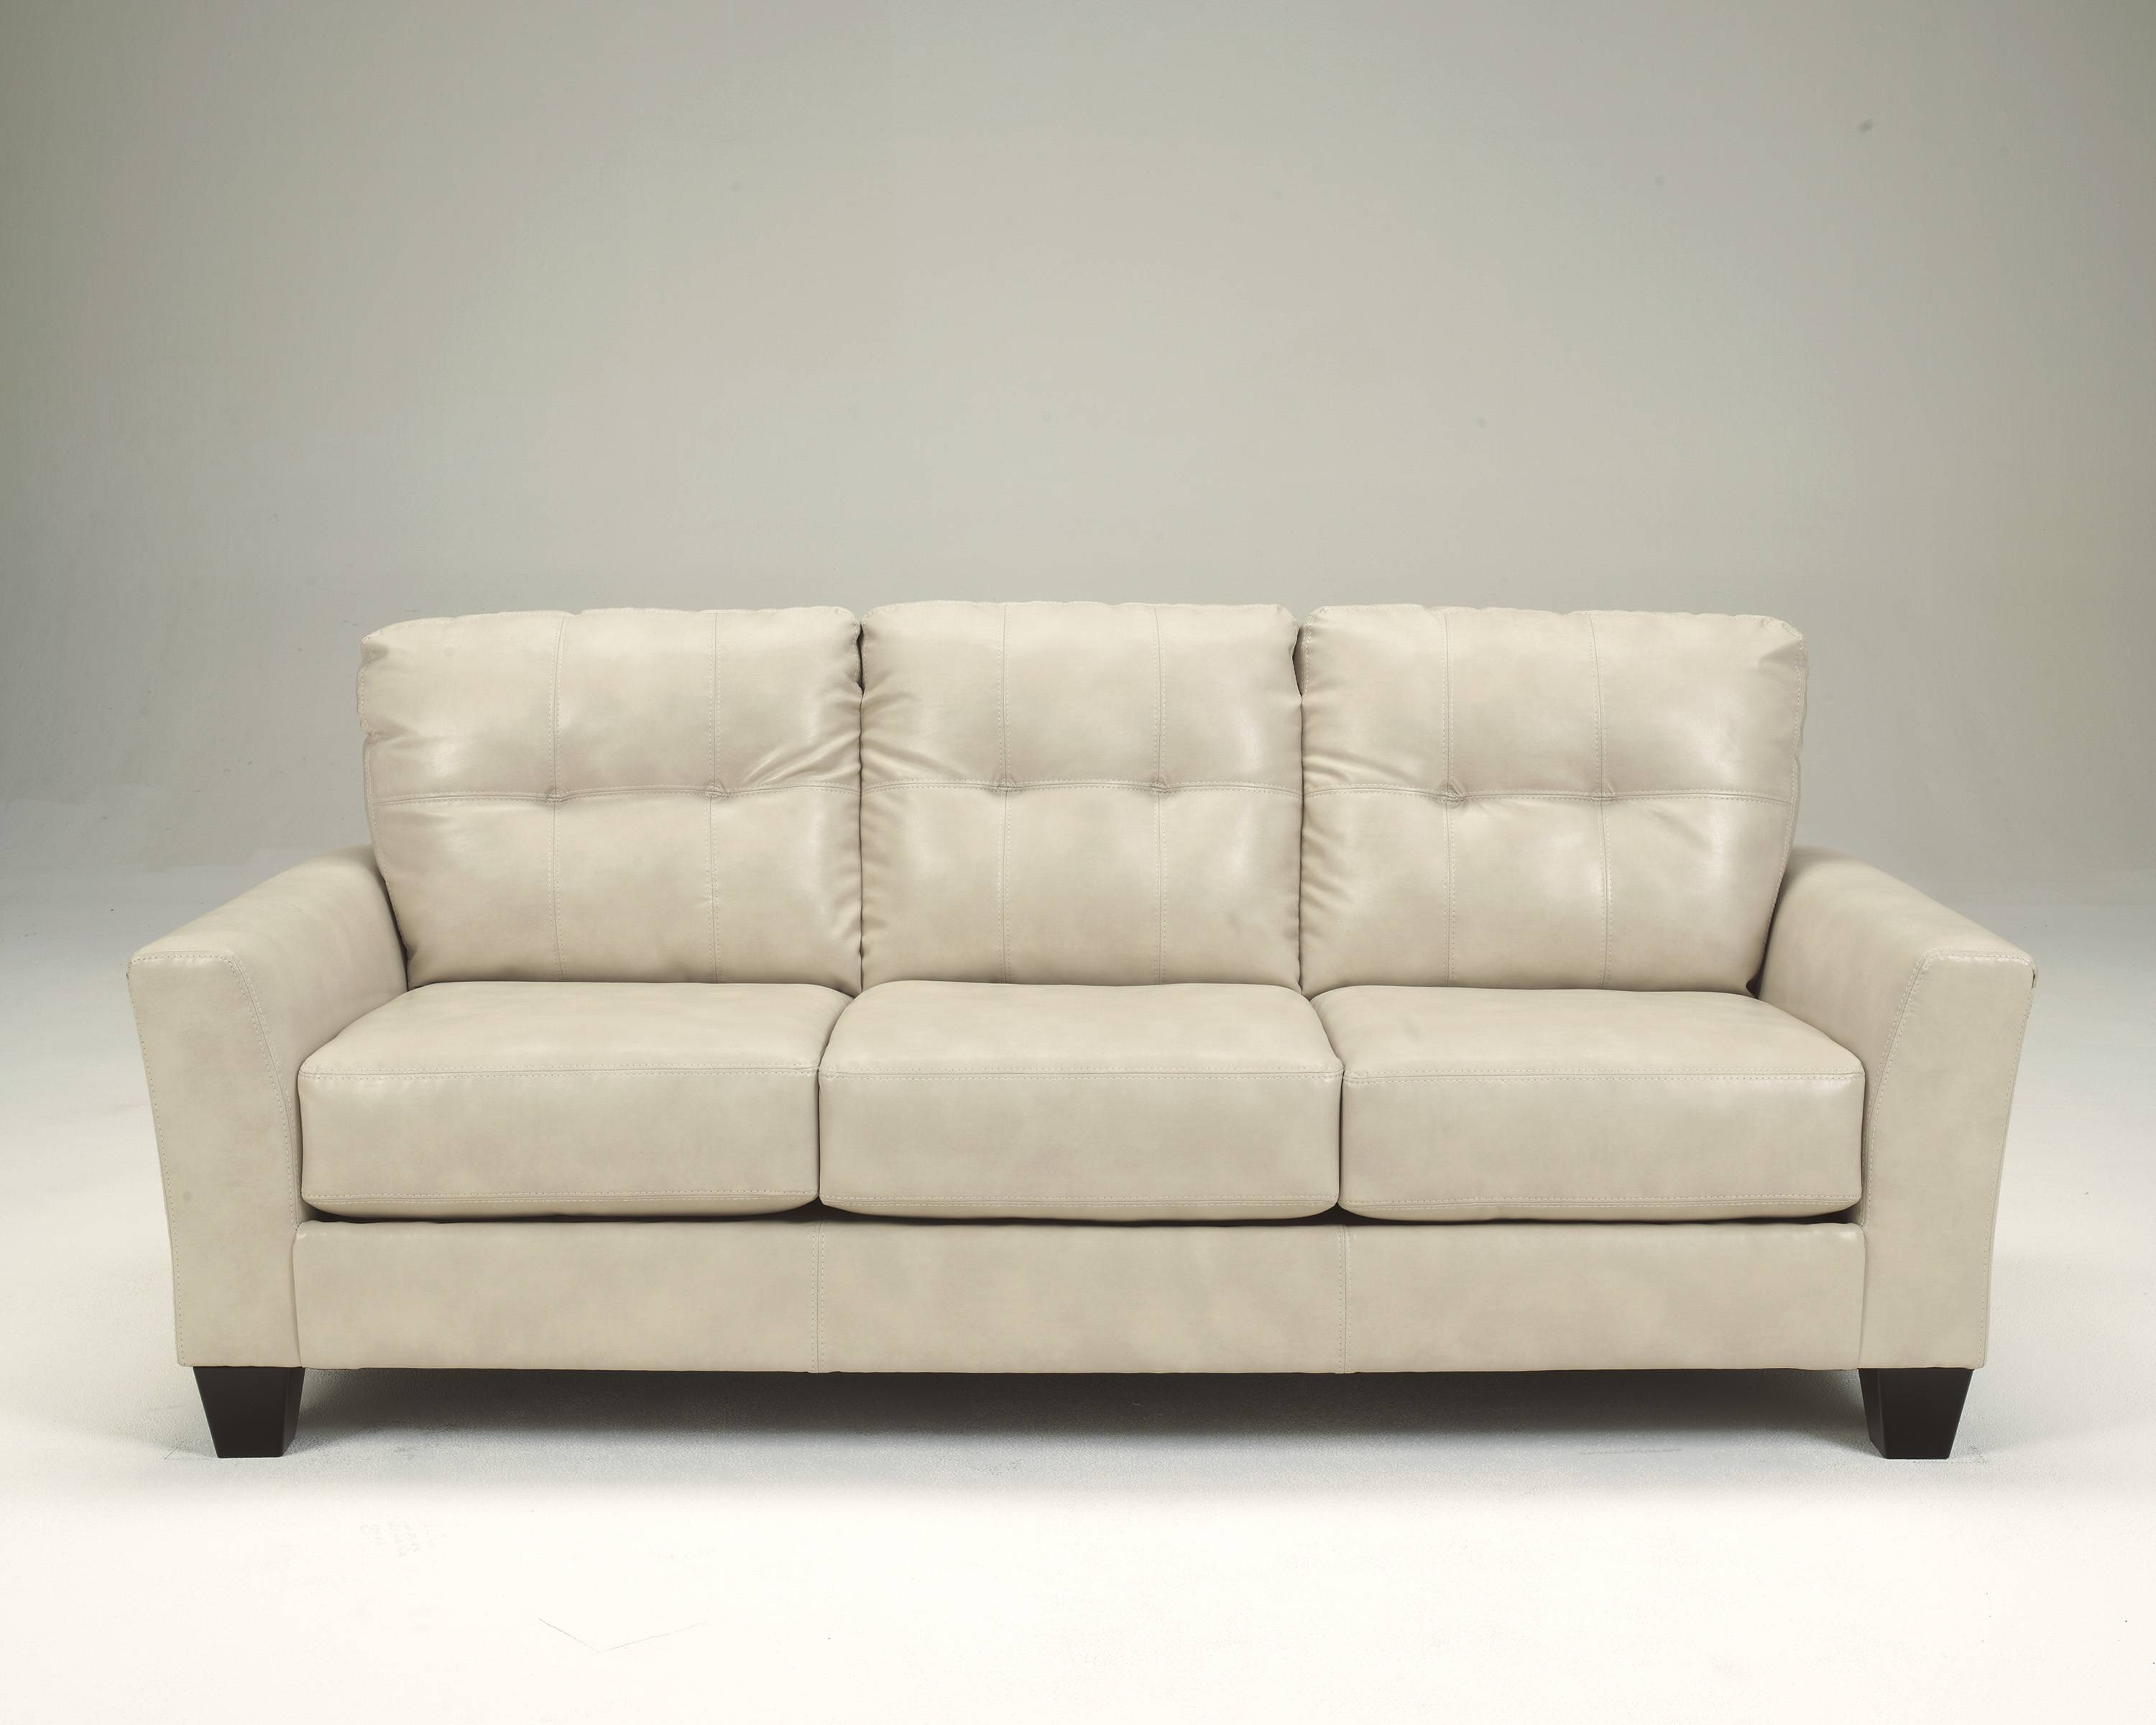 Beautiful Off White Leather Sofa 36 With Additional Sofa Table inside Benchcraft Leather Sofas (Image 1 of 15)